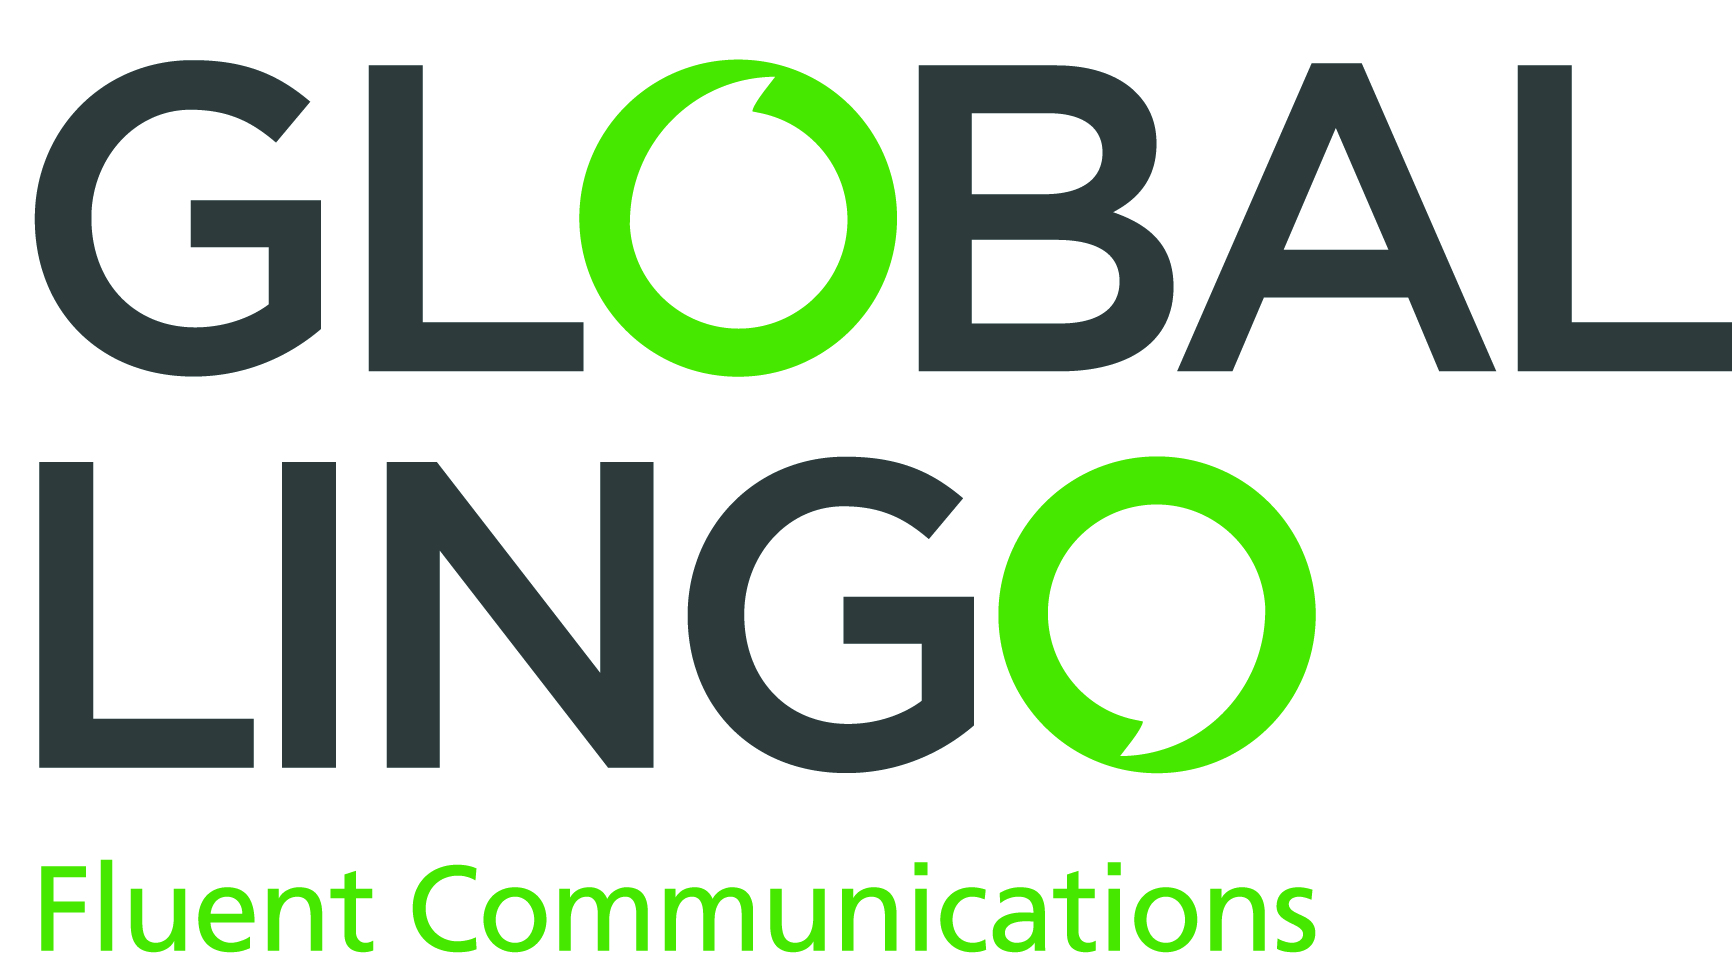 Global_Lingo Logo